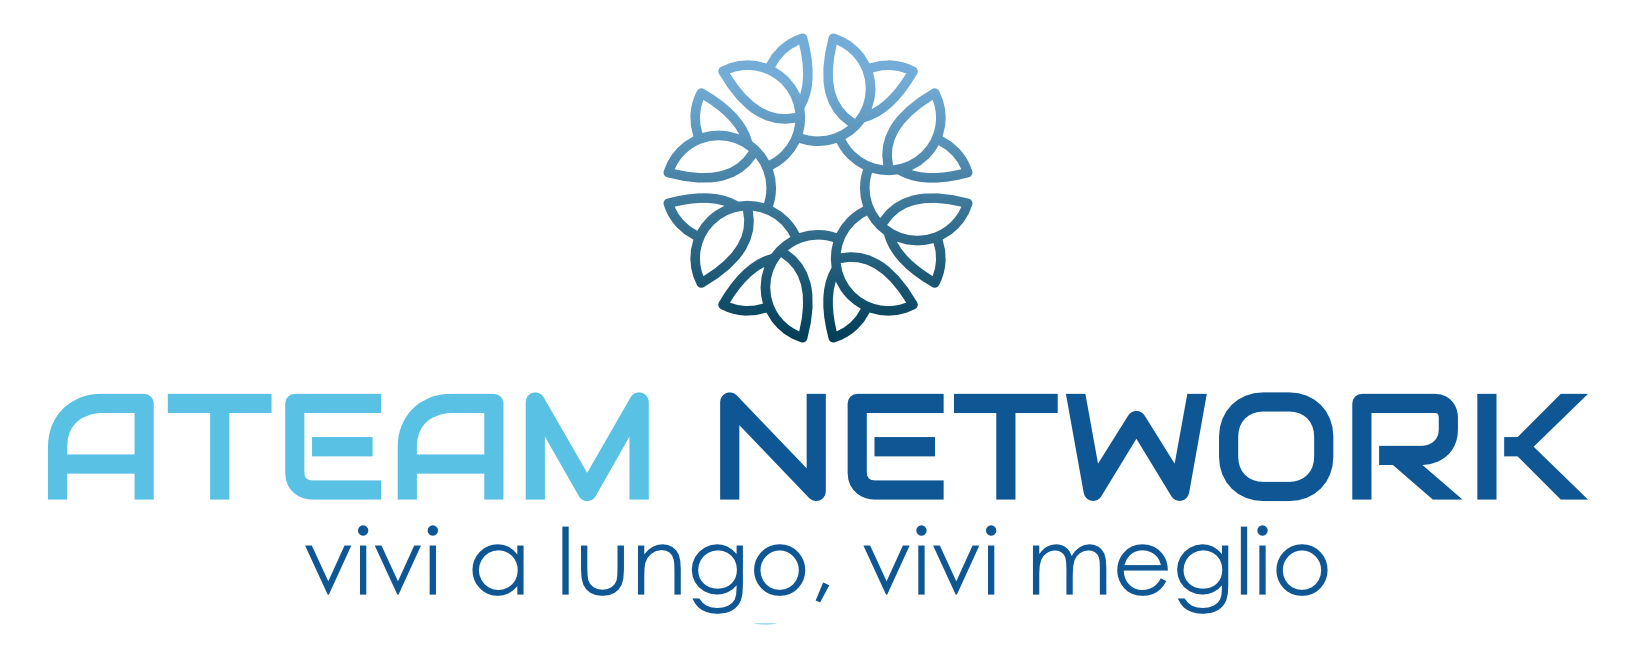 A-Team Network by LifeWave Italia